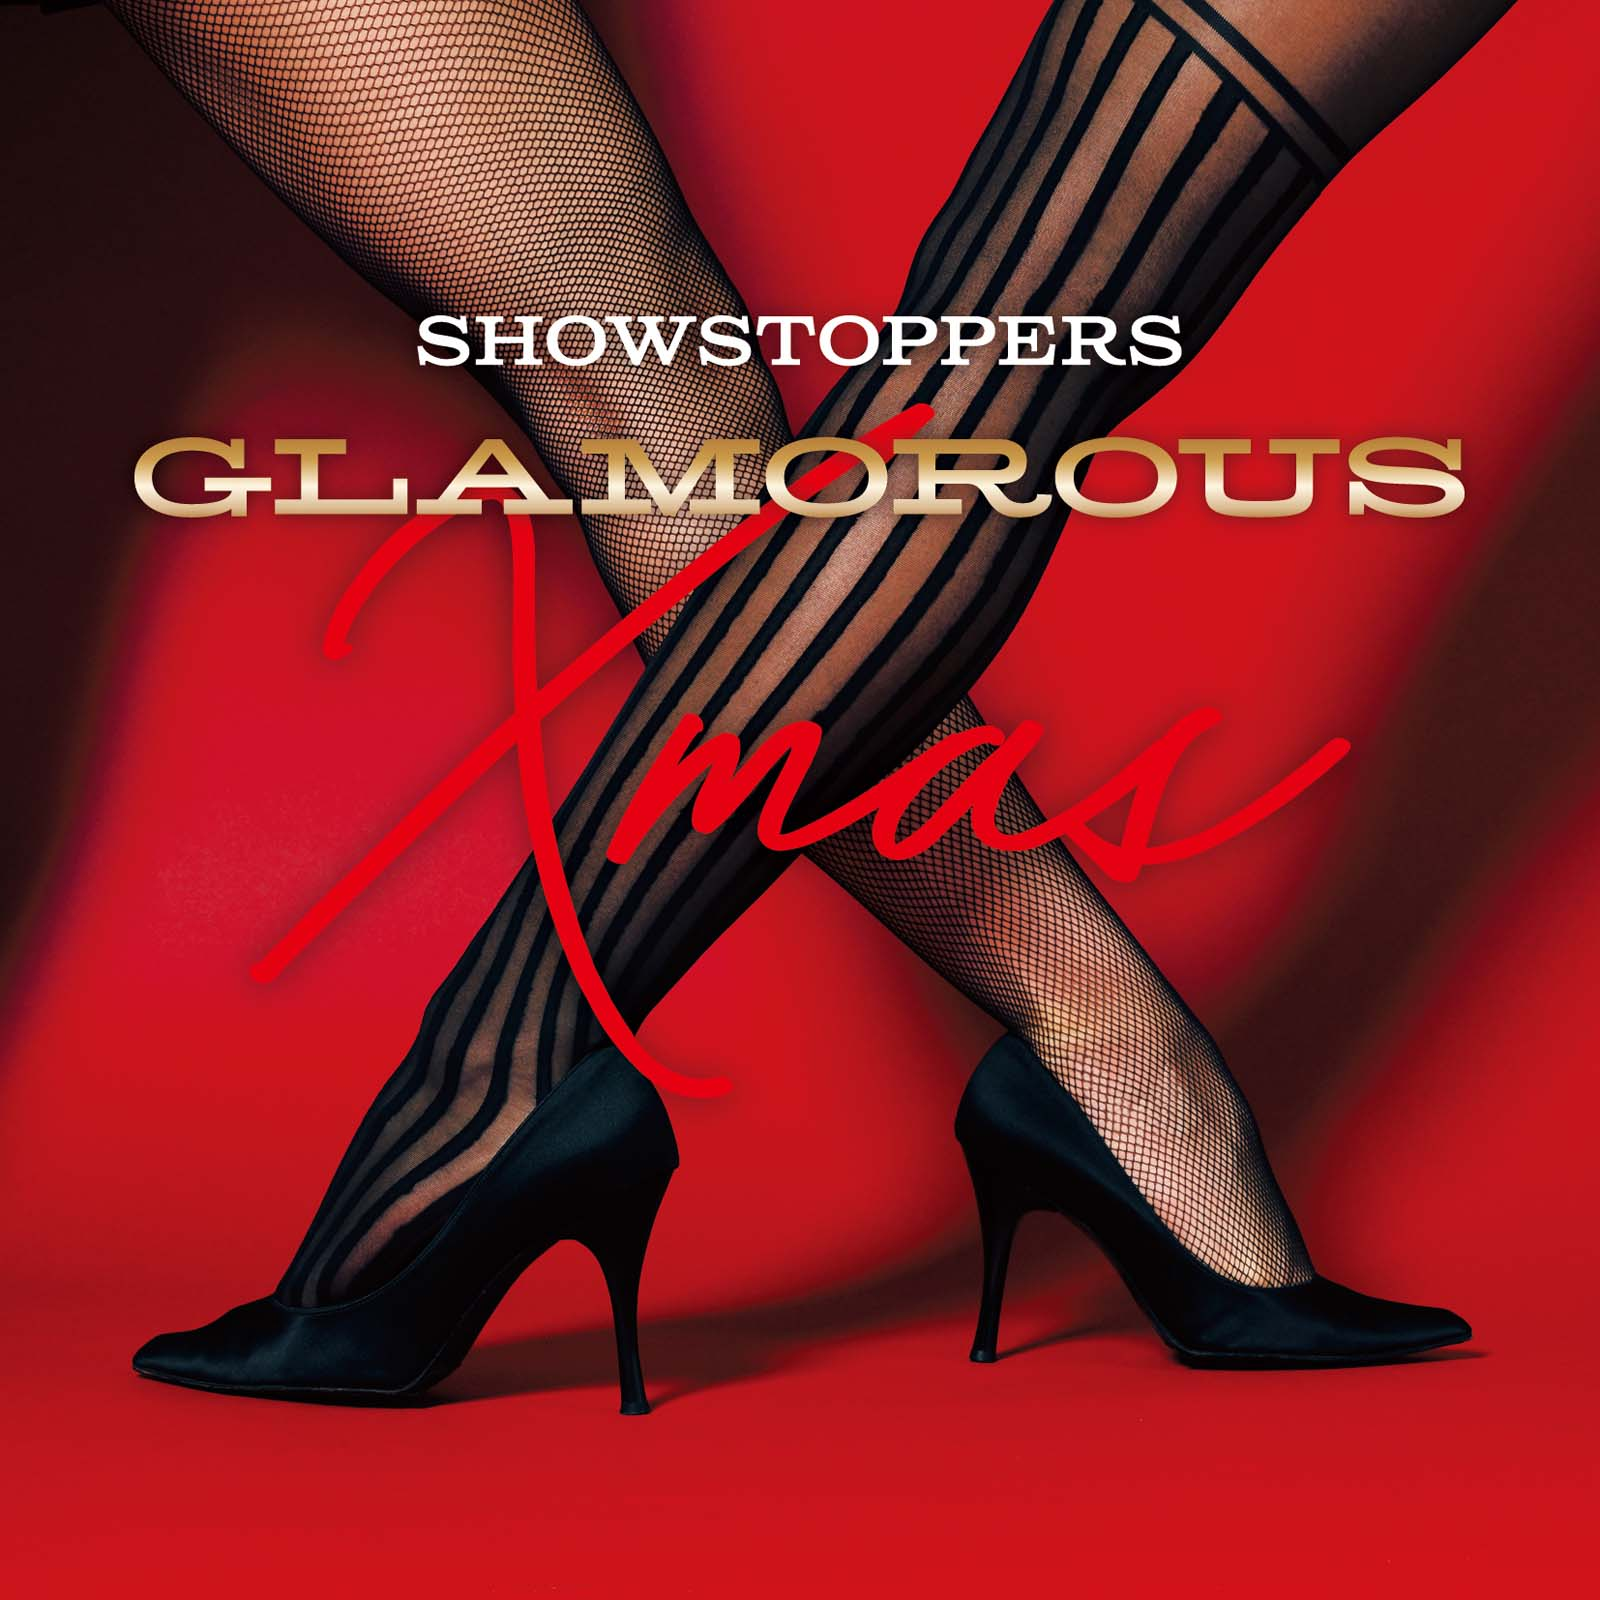 SHOWSTOPPERS_GLAMOROUS Xmas